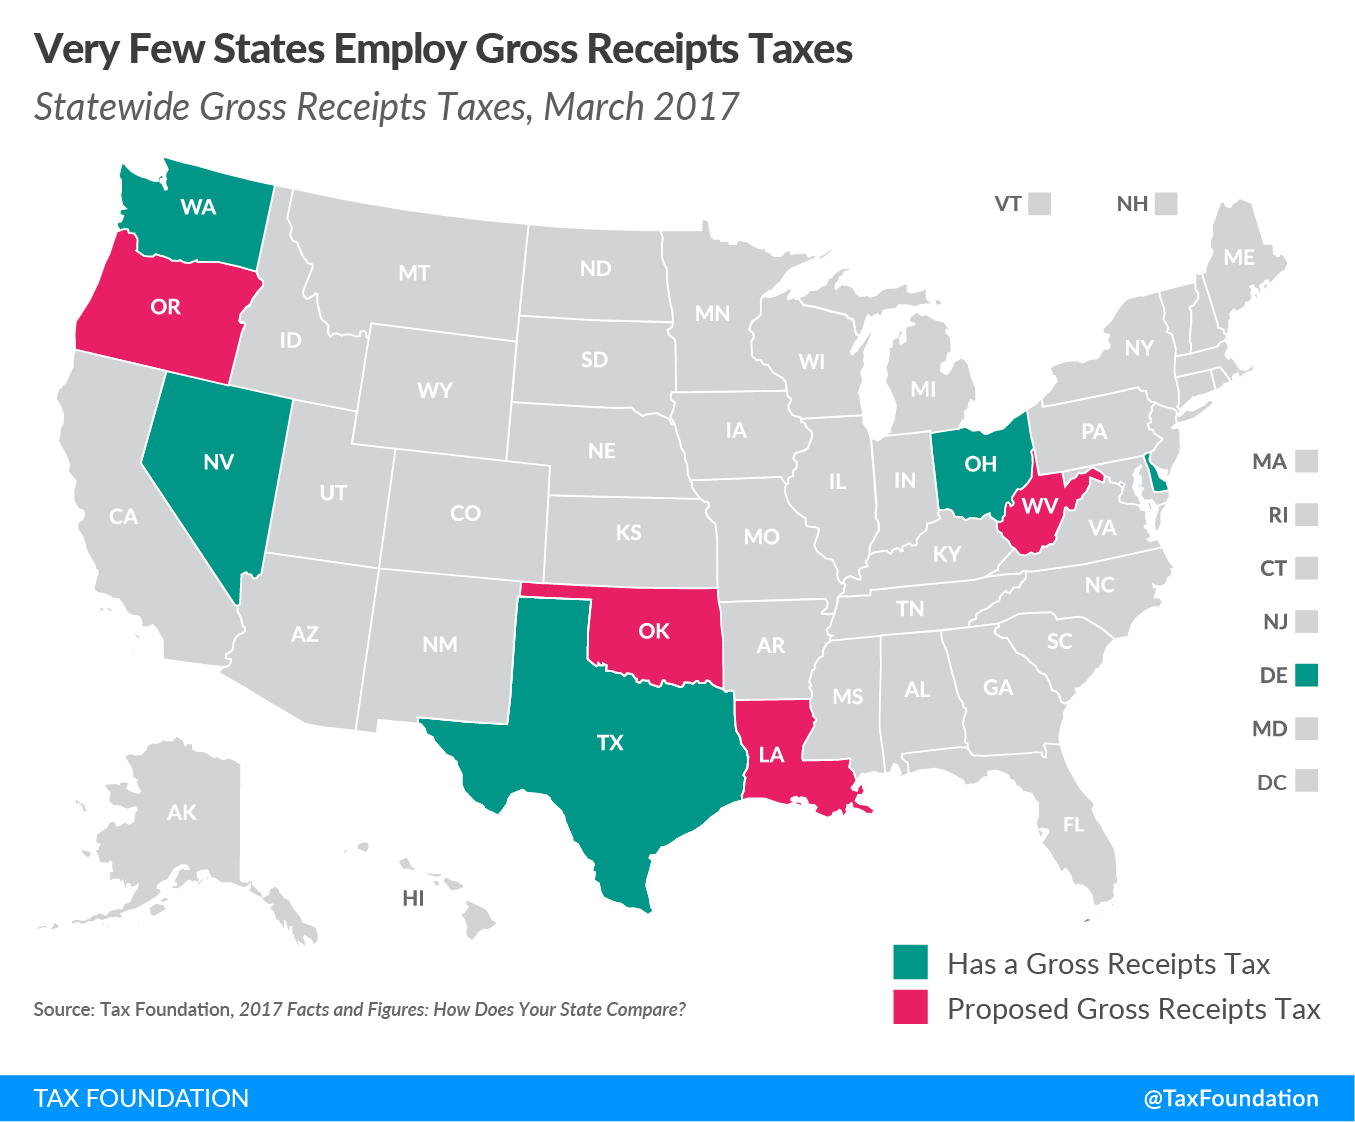 Gross Receipts Taxes 2017 (GRT)